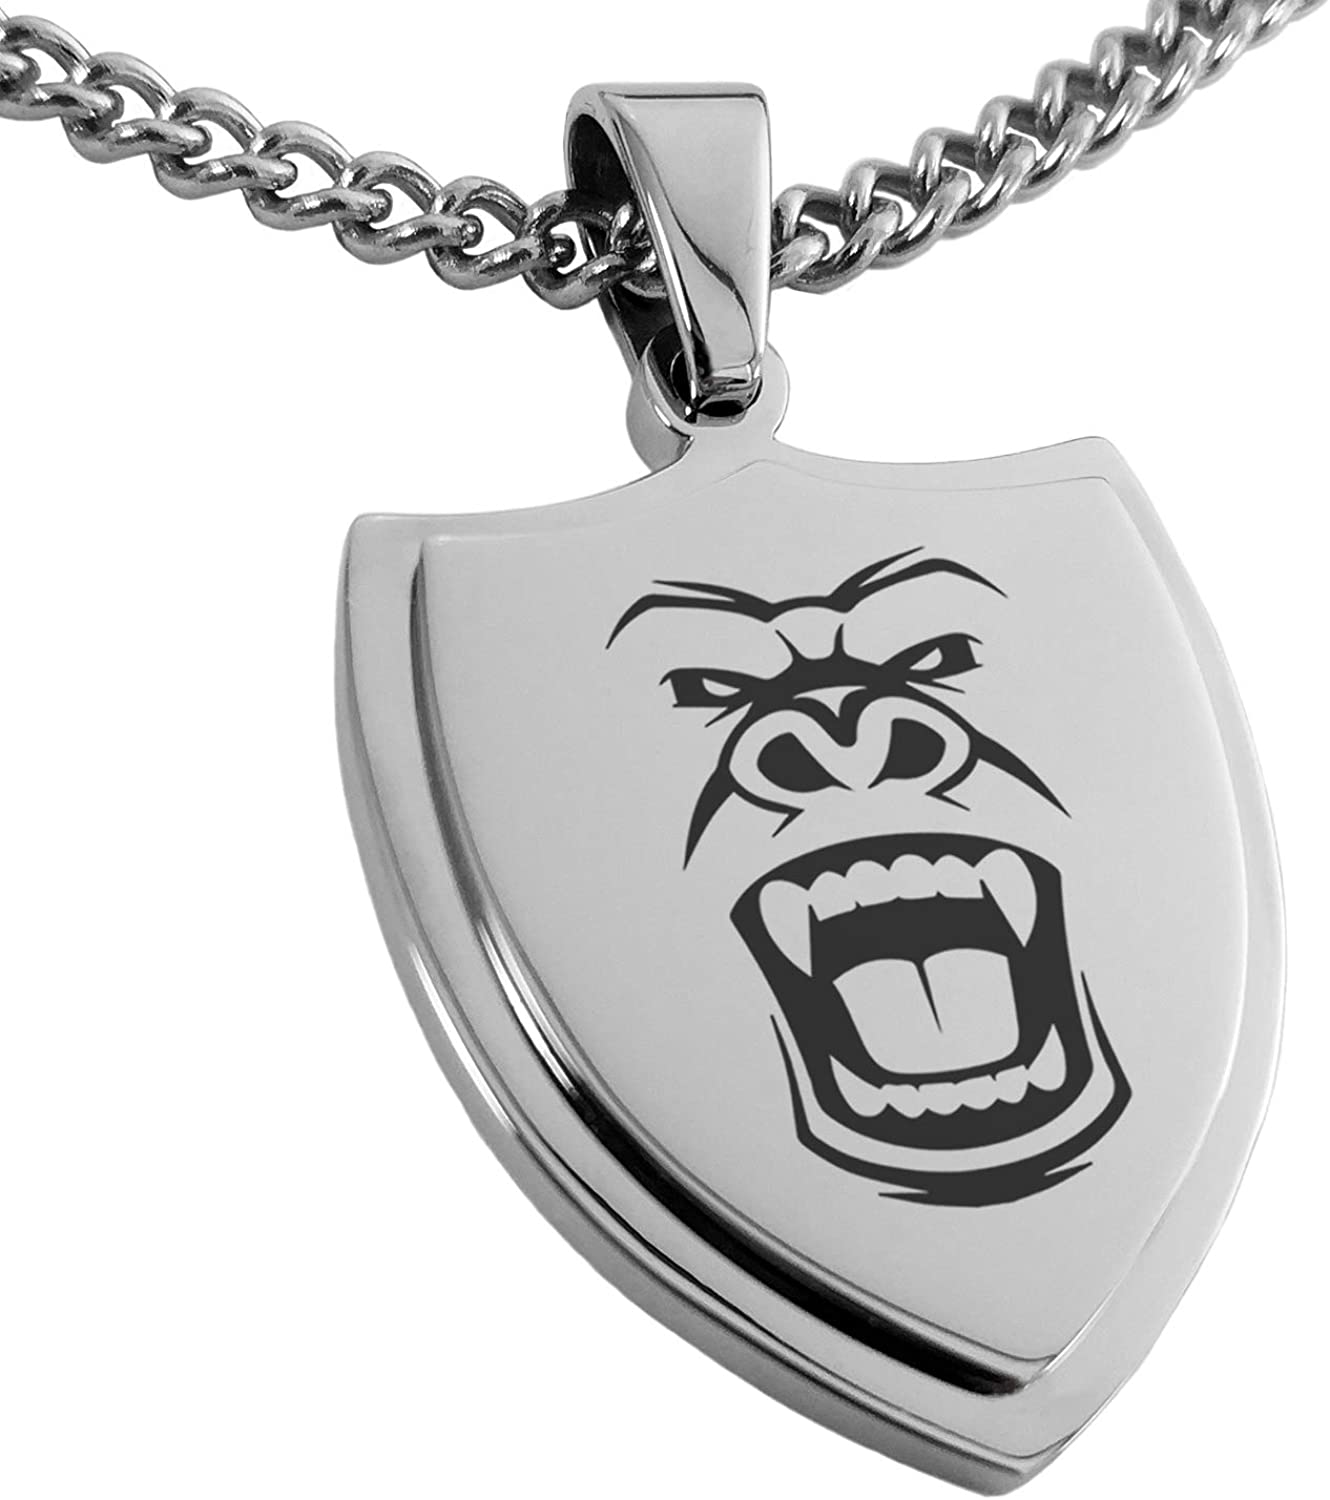 Tioneer Stainless Steel Formidable Kong Gorilla Shield Pendant Necklace